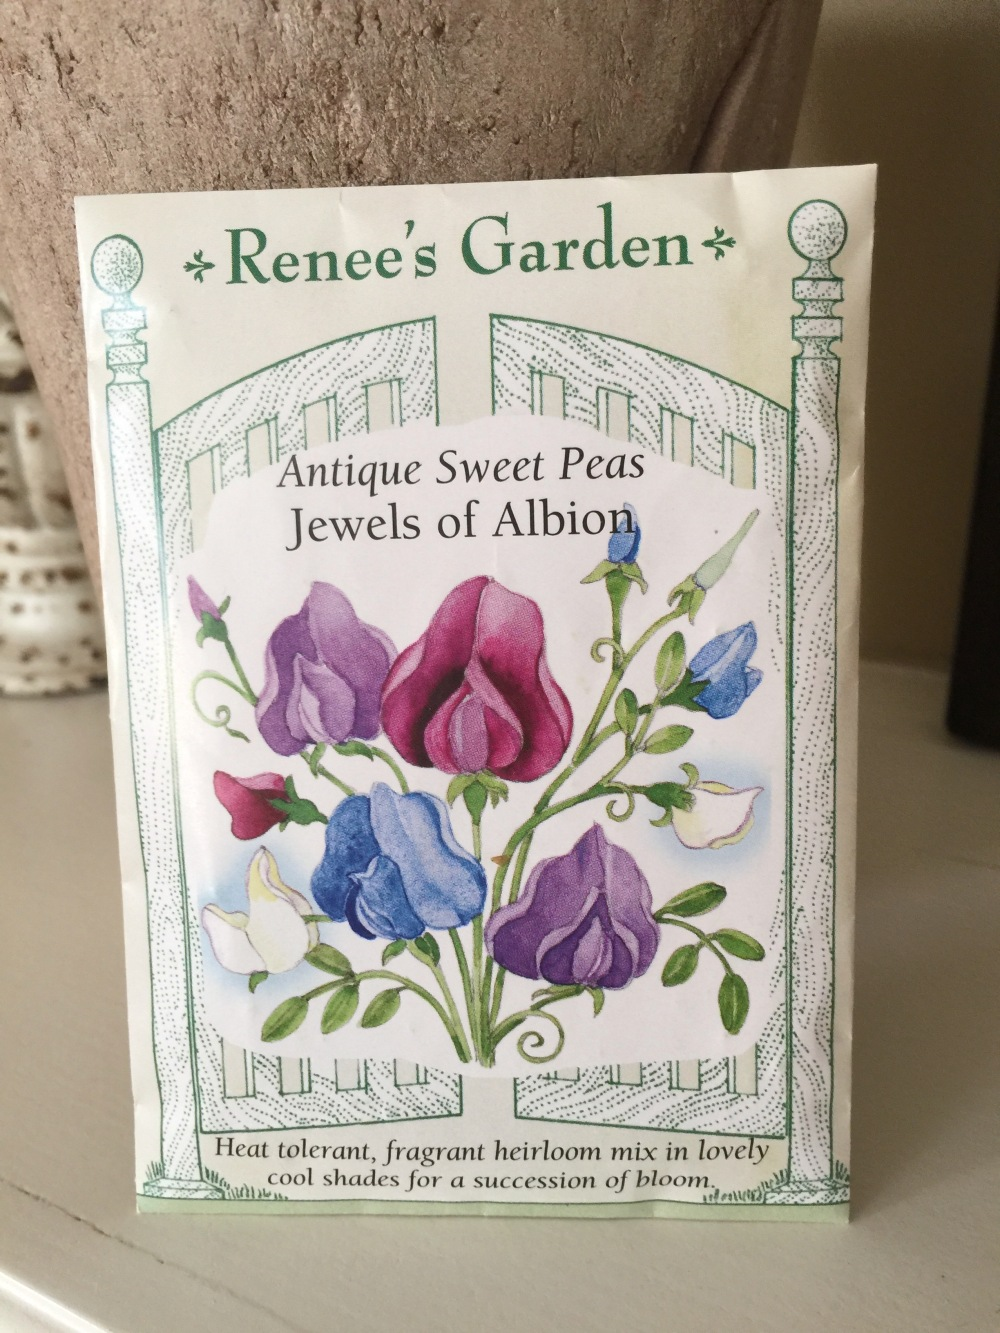 Heirloom Jewels of Albion Sweet Pea Seeds